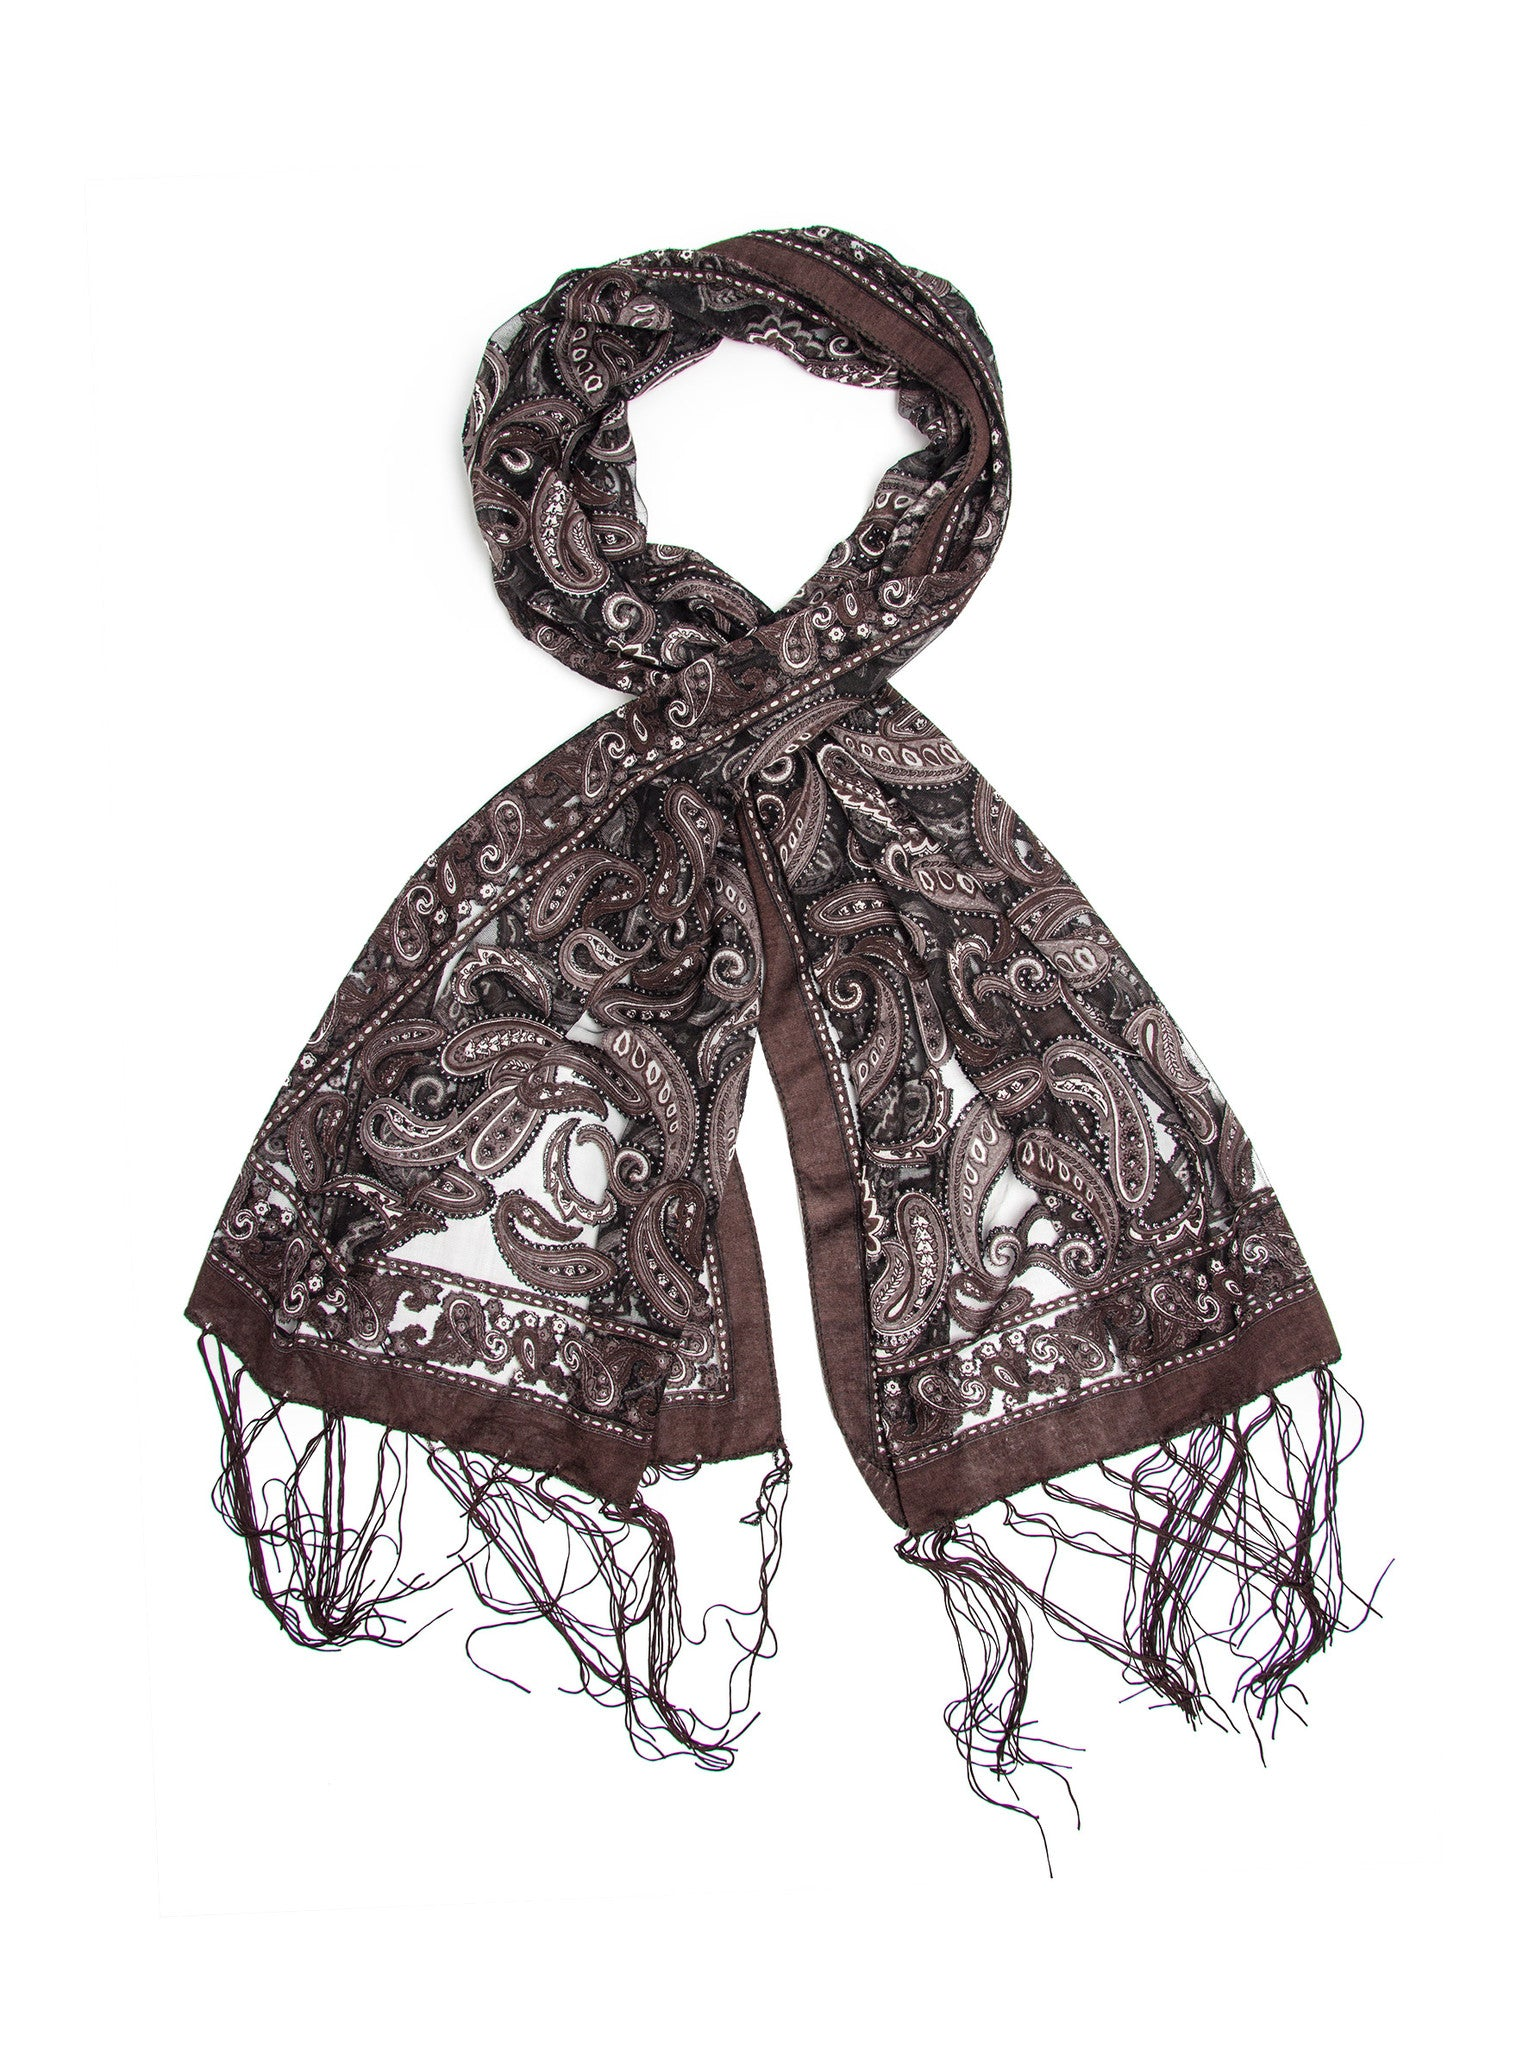 Scarves - Louisa Scarf, Delicate Sheer Burnout Paisley Pattern Scarf Fringe -(Gray/Black / One Size) Bohomonde  - 2